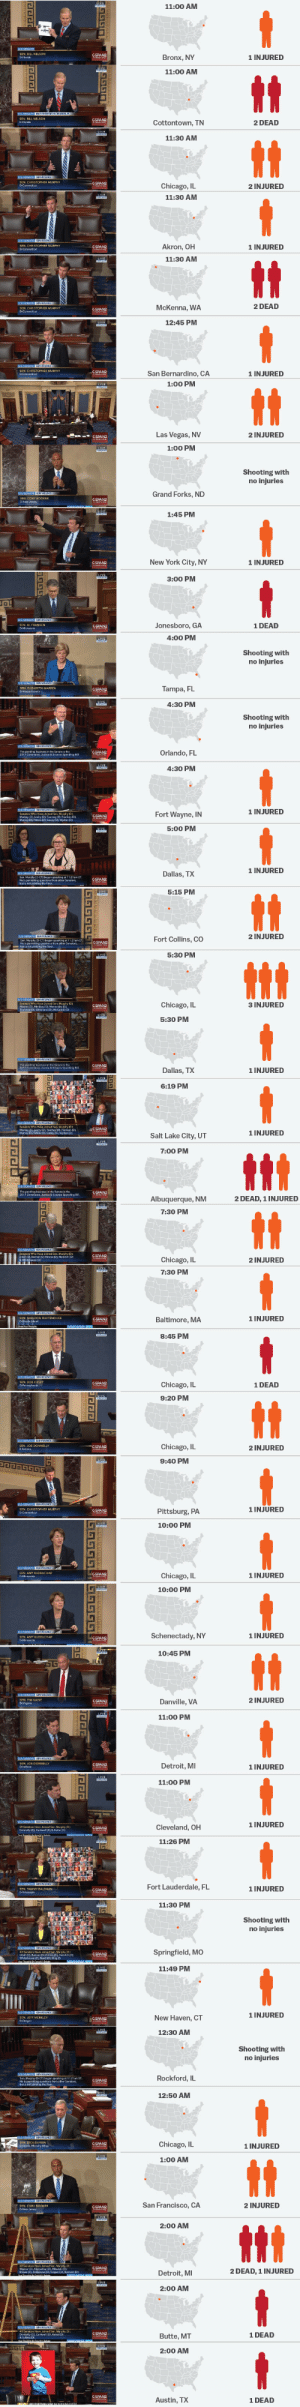 "uppityfemale: vox:  During the 15-hour Senate filibuster on gun control, there were 38 shootings that killed 12 people and injured 36 more across America.  That roughly translates to one shooting per every 23 minutes.   Oh wow… : 11:00 AM  SEN. BILL NELSON  CSPAN2  Bronx, NY  1 INJURED  11:00 AM  SEN. BILL NELSON  CSPAN2  Cottontown, TN  2 DEAD  11:30 AM  SEN CHRISTOPHER MURPHY  CSPAN2  Chicago, IL  11:30 AM  2 INJURED  Akron, OH  11:30 AM  1 INJURED  SEN. CHRISTOPHER MURPHY  CSPAN2  McKenna, WA  2 DEAD  SEN. CHRISTOPHER MURPHY  CSPAN2  12:45 PM  SEN. CHRISTOPHER MURPHY  CSPAN2  San Bernardino, CA  1:00 PM  1 INJURED  Las Vegas, NV  2 INJURED  1:00 PM  Shooting with  no injuries  Grand Forks, ND  SEN. CORY BOOKER  D-New Jersey  CSPAN   1:45 PM  New York City, NY  1 INJURED  CSPAN2  3:00 PM  Jonesboro, GA  1 DEAD  SEN. AL FRANKEN  CSPAN2  4:00 PM  Shooting with  no injuries  Tampa, FL  SEN, ELIZABETH WARREN  4:30 PM  Shooting with  no injuries  The pending business in the Senate is the  2017 Commerce, Justice & Science Spending B  Orlando, FL  4:30 PM  1 INJURED  Senators Who Have Joined Sen. Murphy (D  Markey (DL Leshy IDL Toomey (R), Franken (D  Murray (DI, Peters (DL Casey IOL Wyden (D)  Fort Wayne, IN  CSPAN  5:00 PM  1 INJURED  Dallas, T>X  Sen. Murphy (D-CT) began speaking at 11:21am ET.  He is permitting questions from other Senators  but is not yielding the f  5:15 PM  2 INJURED  Fort Collins, CO  Sen. Murphy (D.CT) began speaking at 11:21am ET  CSPAN2  but is not yielding the fioor.  5:30 PM  Senators Who Have Joined Sen. Murphy ID  Warren (D), Merkley (OL Menendez IDI.  Shaheen (D, Gillibrand (Di, McCaskill ID)  Chicago, IL  3 INJURED  CSPAN2   5:30 PM  business in the Senate is the  GSPAN  2017 Conwmierce, Justic&Sclience Spending Bil  Dallas, TX  1 INJURED  6:19 PM  Senators who Hau"" Joined Sen Murphy (D):  Markey (DL Leahy (DX Toomey IRI Franken (D)  Murray {Di Peters CD), Casey (D), wyden CD)  C-SPAN2  1 INJURED  Salt Lake City, UT  7:00 PM  The pending business in the Senate is the  2017 Commerce, Justice & Science Spending Bll  CSPAN2  Albuquerque, NM  2 DEAD, 1 INJURED  7:30 PM  Senators Who Have Joined Sen Murphy (D  Udail (D1 Bennet(D) Hirono (DI Heinnich (D)  CSPAN2  Chicago, IL  2 INJURED  7:30 PM  1 INJURED  SEN. SHELDON WHITEHOUSE  Baltimore, MA  CSPAN2  145 T  8:45 PM  Chicago, IL  SEN. BOB CASEY  CSPAN2  1 DEAD  9:20 PM  Chicago, IL  SEN. JOE DONNELLY  CSPAN2  2 INJURED  9:40 PM  1 INJURED  SEN. CHRISTOPHER MURPHY  Pittsburg, PA  CSPAN2   10:00 PM  SEN. AMY KLOBUCHAR  Chicago, IL  C-SPAN2  1 INJURED  10:00 PM  Schenectady, NY  1 INJURED  SEN. AMY KLOBUCHAR  CSPAN2  10:45 PM  2 INJURED  SEN. TIM KAINE  Danville, VA  CSPAN  11:00 PM  SEN. JOE DONNELLY  Detroit, MI  -SPAN2  1 INJURED  11:00 PM  39 Senstors Have Joined Sen. Murphy (D  Donnelly (DL Cantwel (D)& Kaine (D)  Cleveland, OH  1 INJURED  CSPAN2  11:26 PM  Fort Lauderdale, FL  1 INJURED  SEN, TAMMY BALDWIN  CSPAN2  11:30 PM  It  Shooting with  no injuries  40 Senators Have Joined Sen, Murphy ID  Udall CD), Bennet (DI Hirono (D), Heinrich (D)  Springfield, MO  CSPAN  11:49 PM  1 INJURED  New Haven, CT  SEN. JEFF MERKLEY  CSPAN   12:30 AM  Shooting with  no injuries  Sen Murphy (D-CT) began speaking at 11:21am ET.  He is permiting questions from other Senators,  aCSPAN2  Rockford, IL  12:50 AM  SEN DICK DURBIN  D lloolk, Mincrity Whip  Chicago, IlL  CSPAN2  1 INJURED  1:00 AM  SEN. CORY BOOKER  D.New Jerney  San Francisco, CA  2 INJURED  CSPAN2  2:00 AM  40 Senators Have Joined Ser  Warner [Dl, Klobuchar (Di Mikulski C  Di:  SPAN2  Detroit, MI  2 DEAD, 1 INJURED  2:00 AM  40 Senatoes Have Joined Sen. Murphy ID:  Donnelly i DI, Cantwell (DA Kaine (D  & Schatr (ID)  CSPAN2  Butte, MT  1 DEAD  2:00 AM  CSPAN2  Austin, TX  1 DEAD uppityfemale: vox:  During the 15-hour Senate filibuster on gun control, there were 38 shootings that killed 12 people and injured 36 more across America.  That roughly translates to one shooting per every 23 minutes.   Oh wow…"